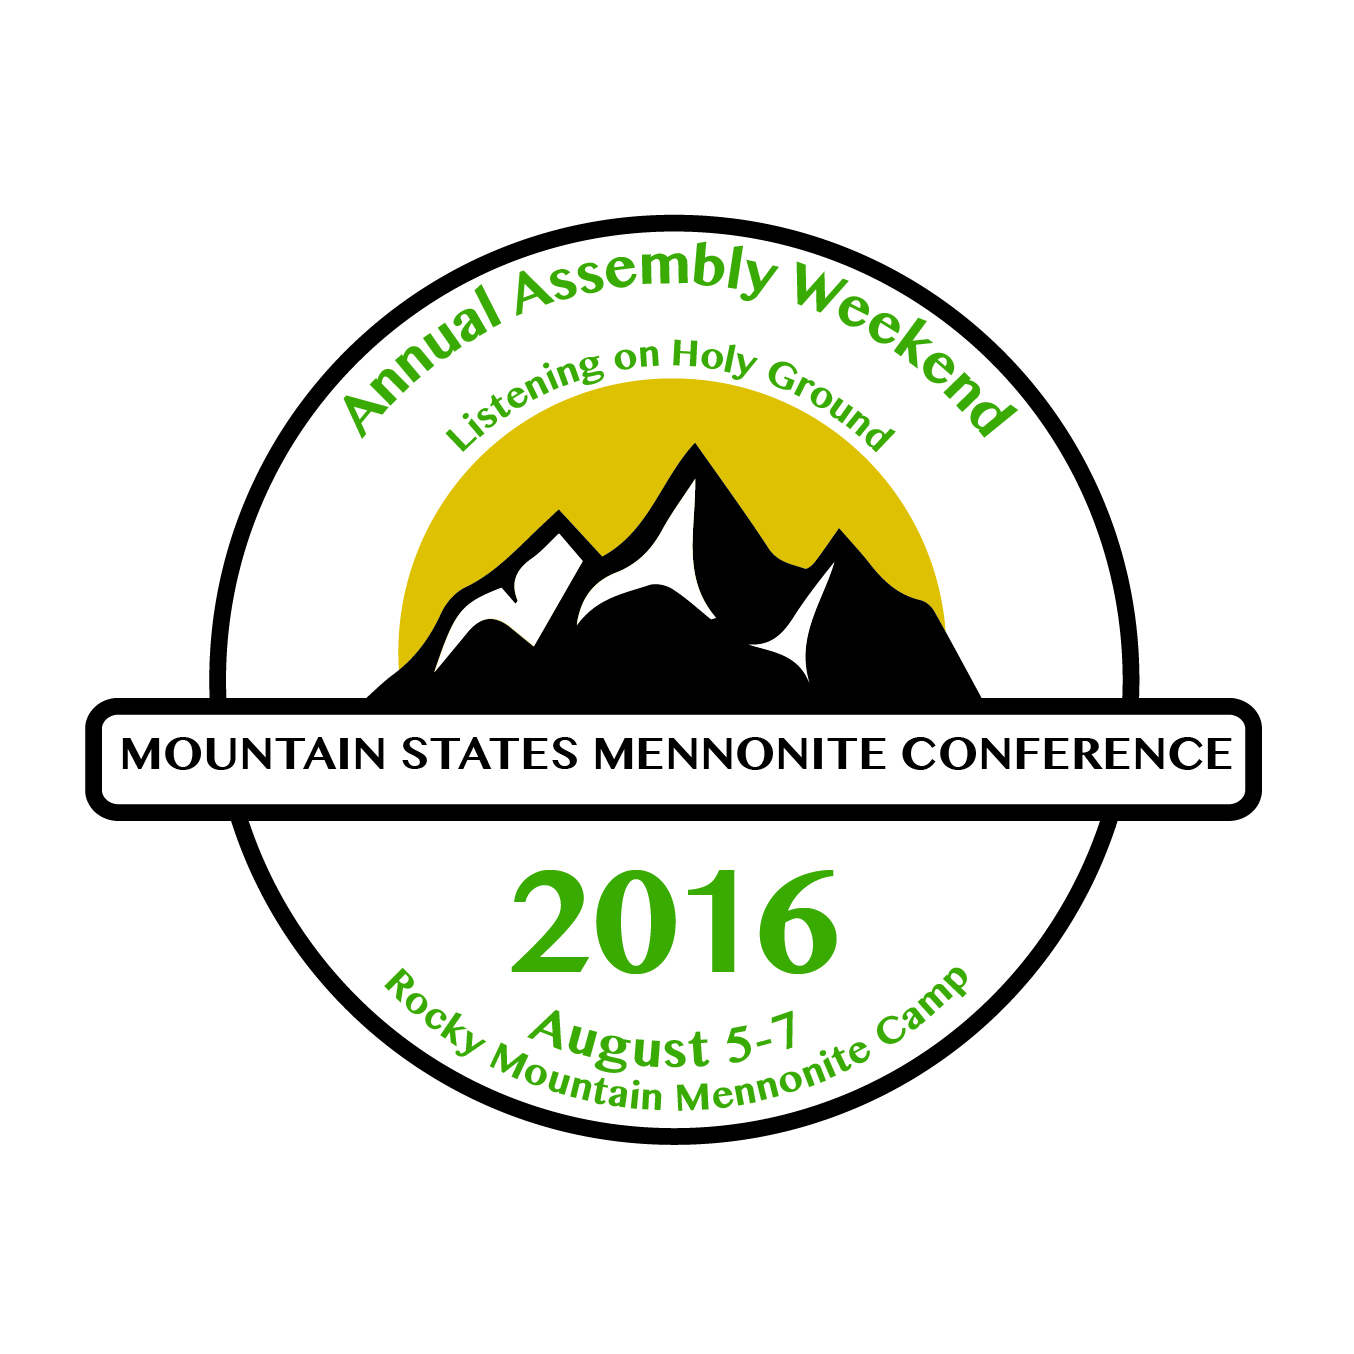 2016 annual assembly mountain states mennonite conference